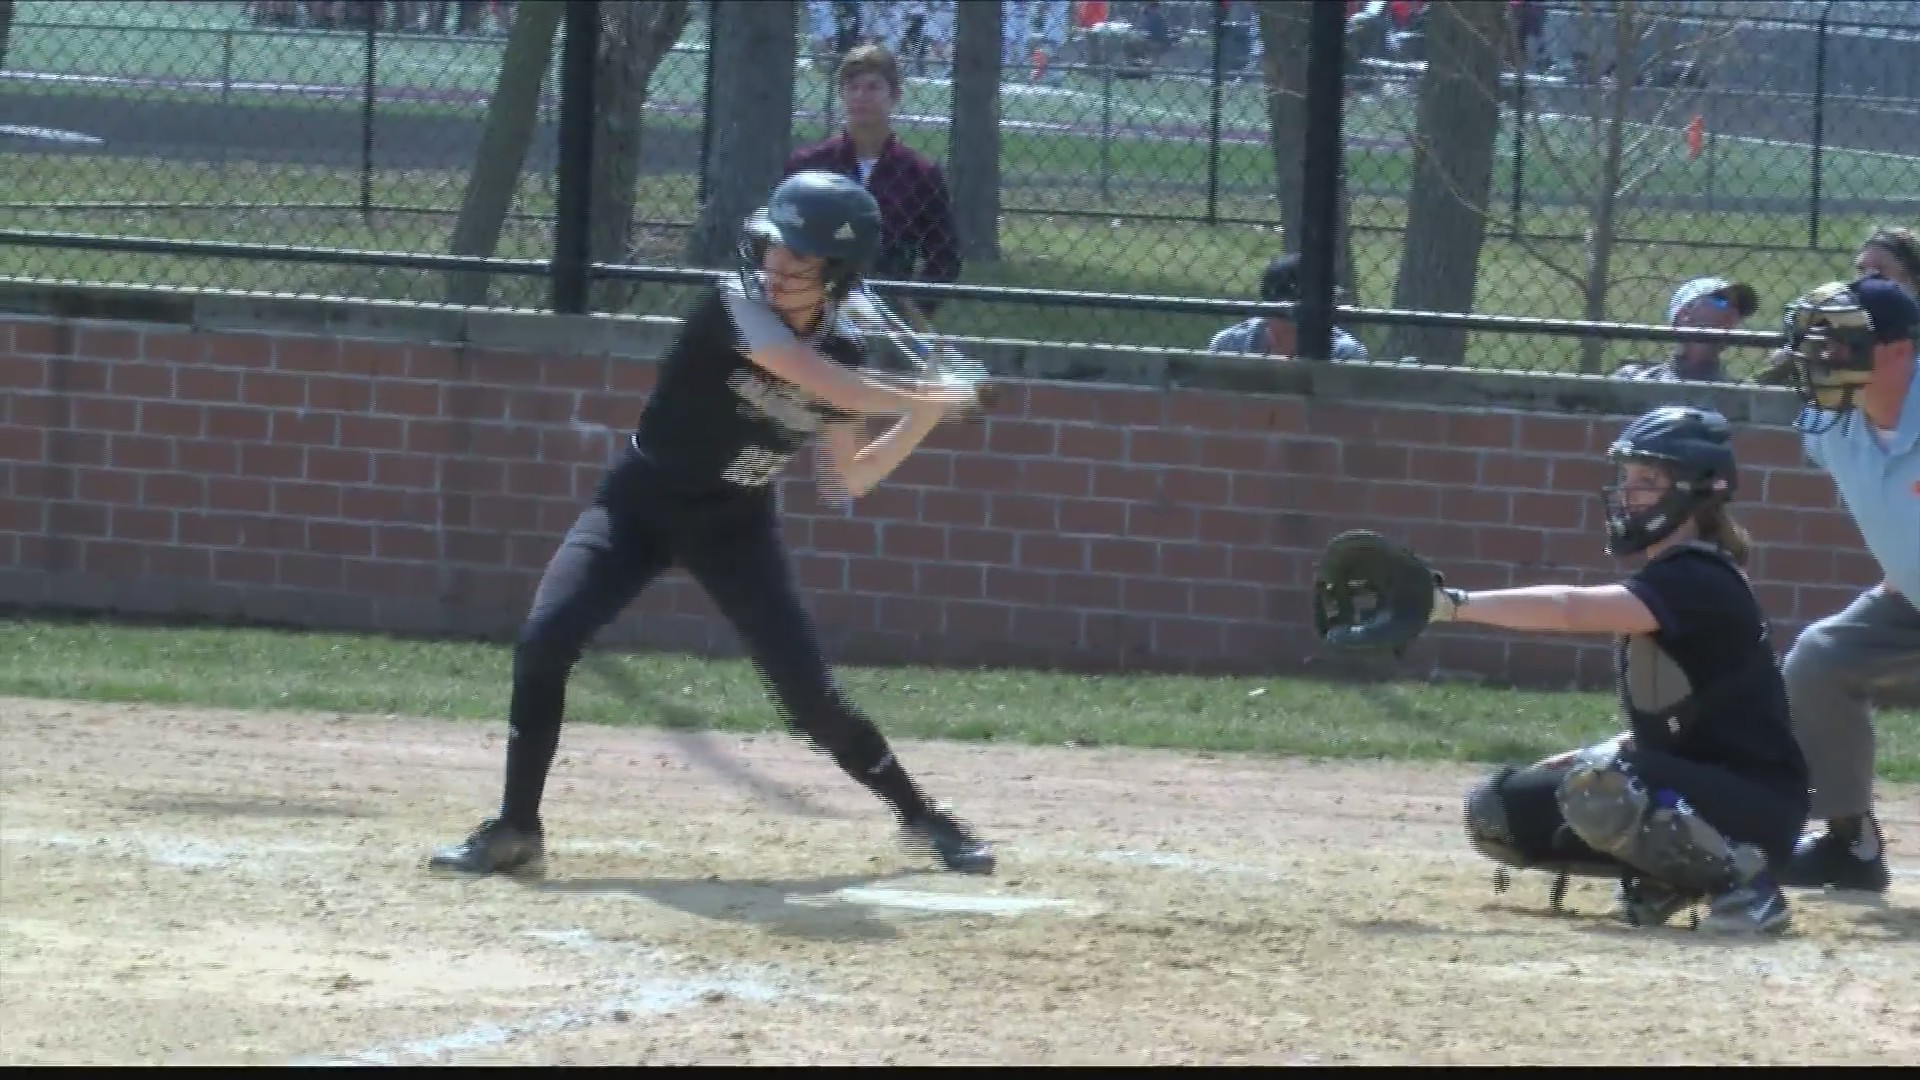 Midwest_Central_Softball_Takes_Swings_at_1_20190412035543